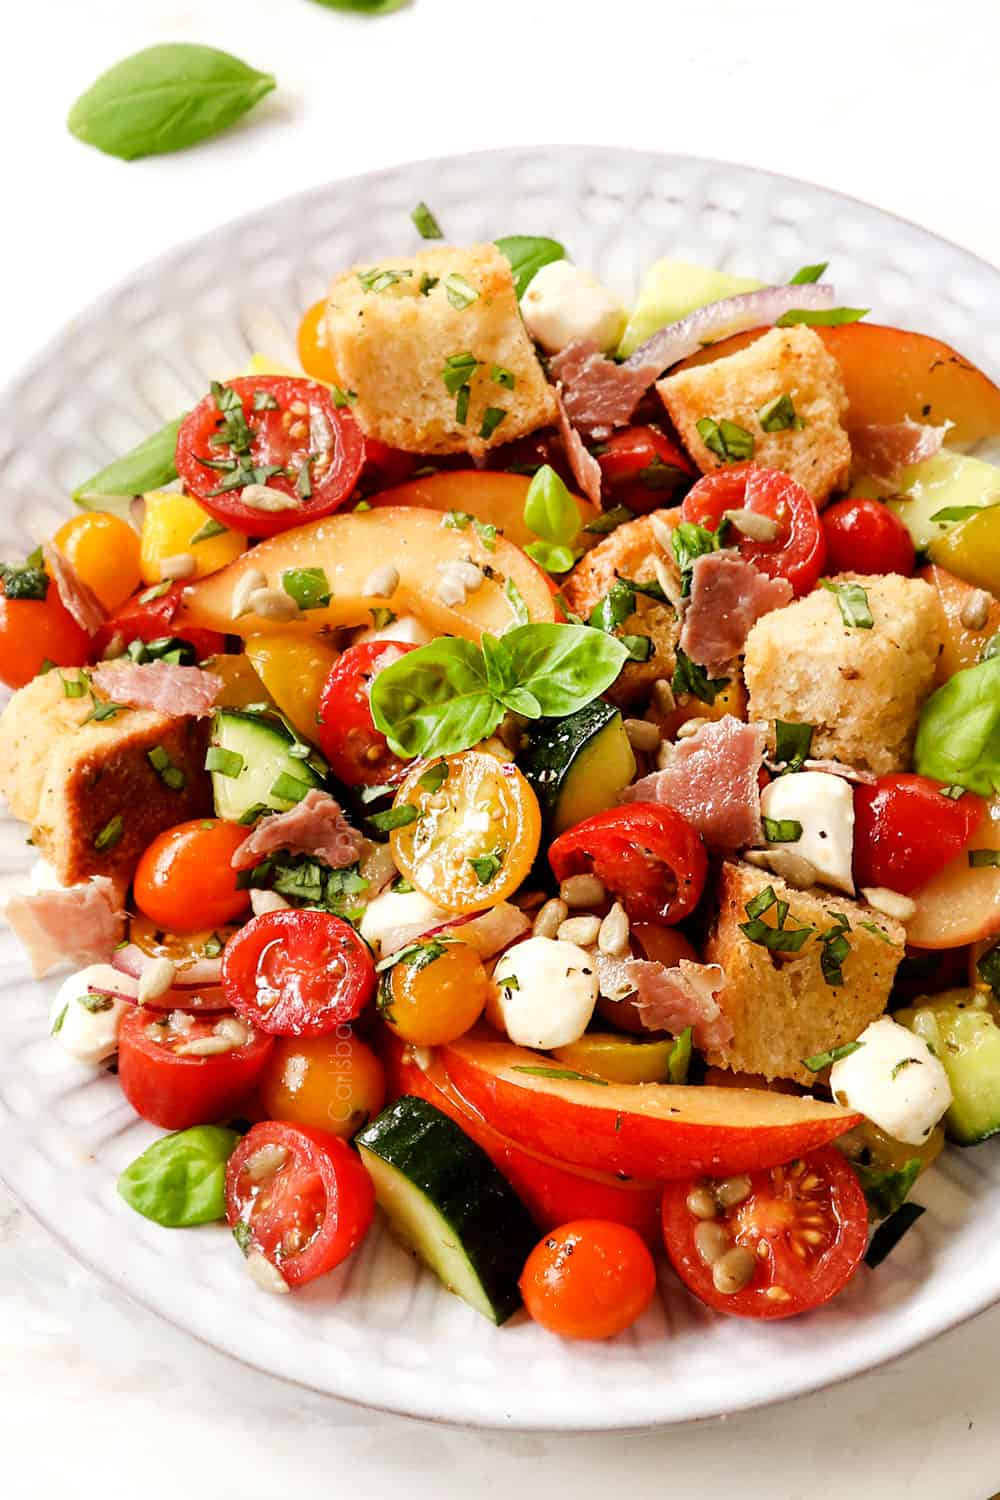 showing how how to serve panzanella salad recipe by adding to a plate and garnishing with fresh basil